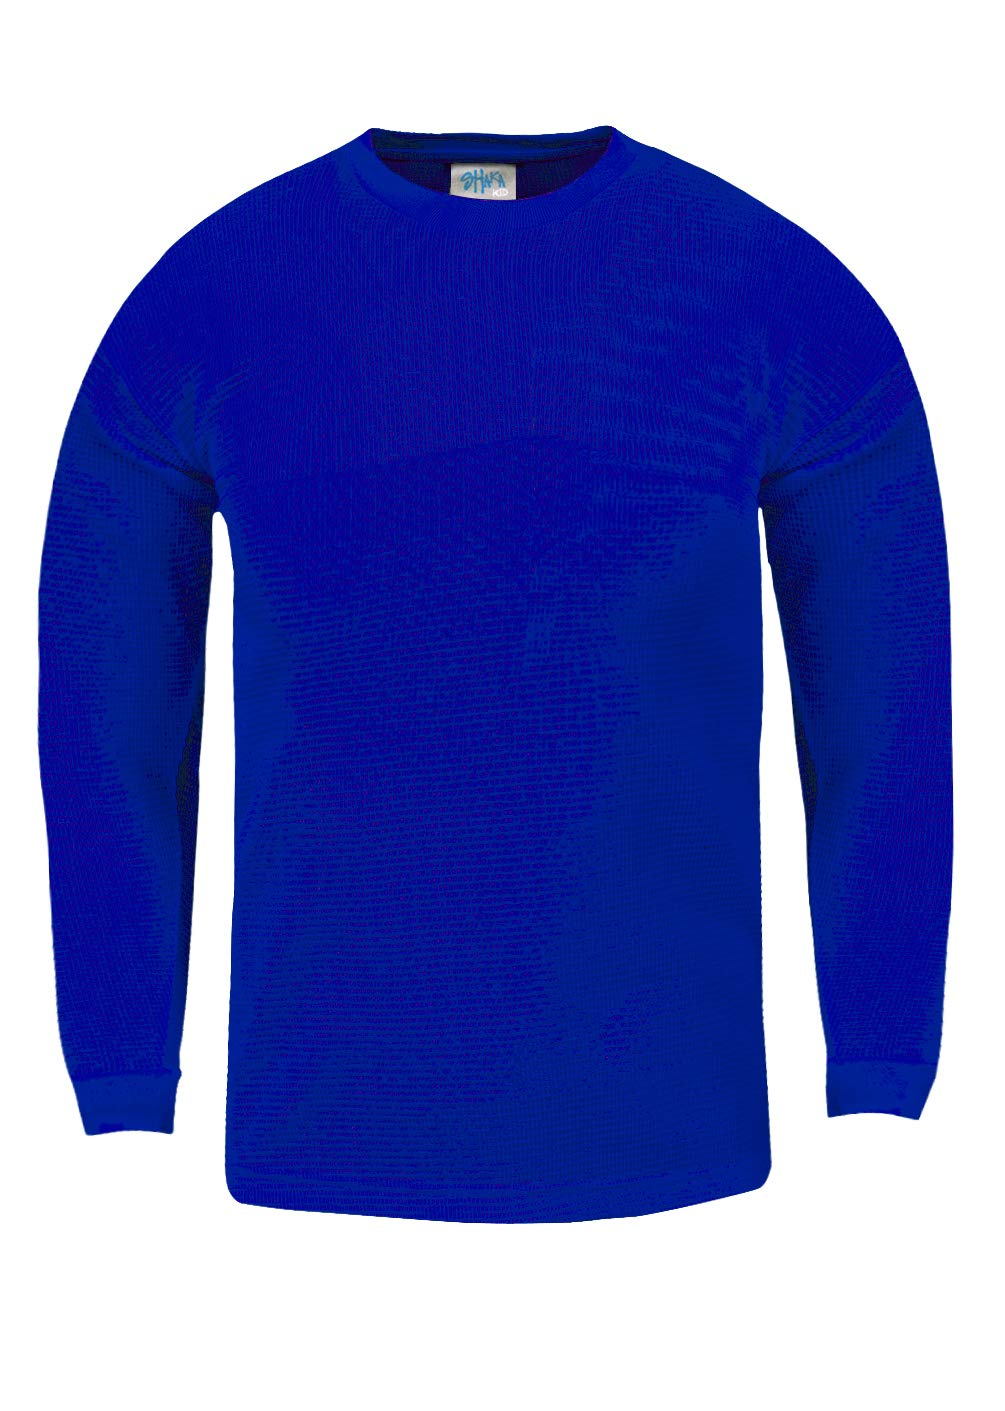 KTC13_L Thermal Long Sleeve Crewneck Waffle Shirt Royal L by Shaka Wear